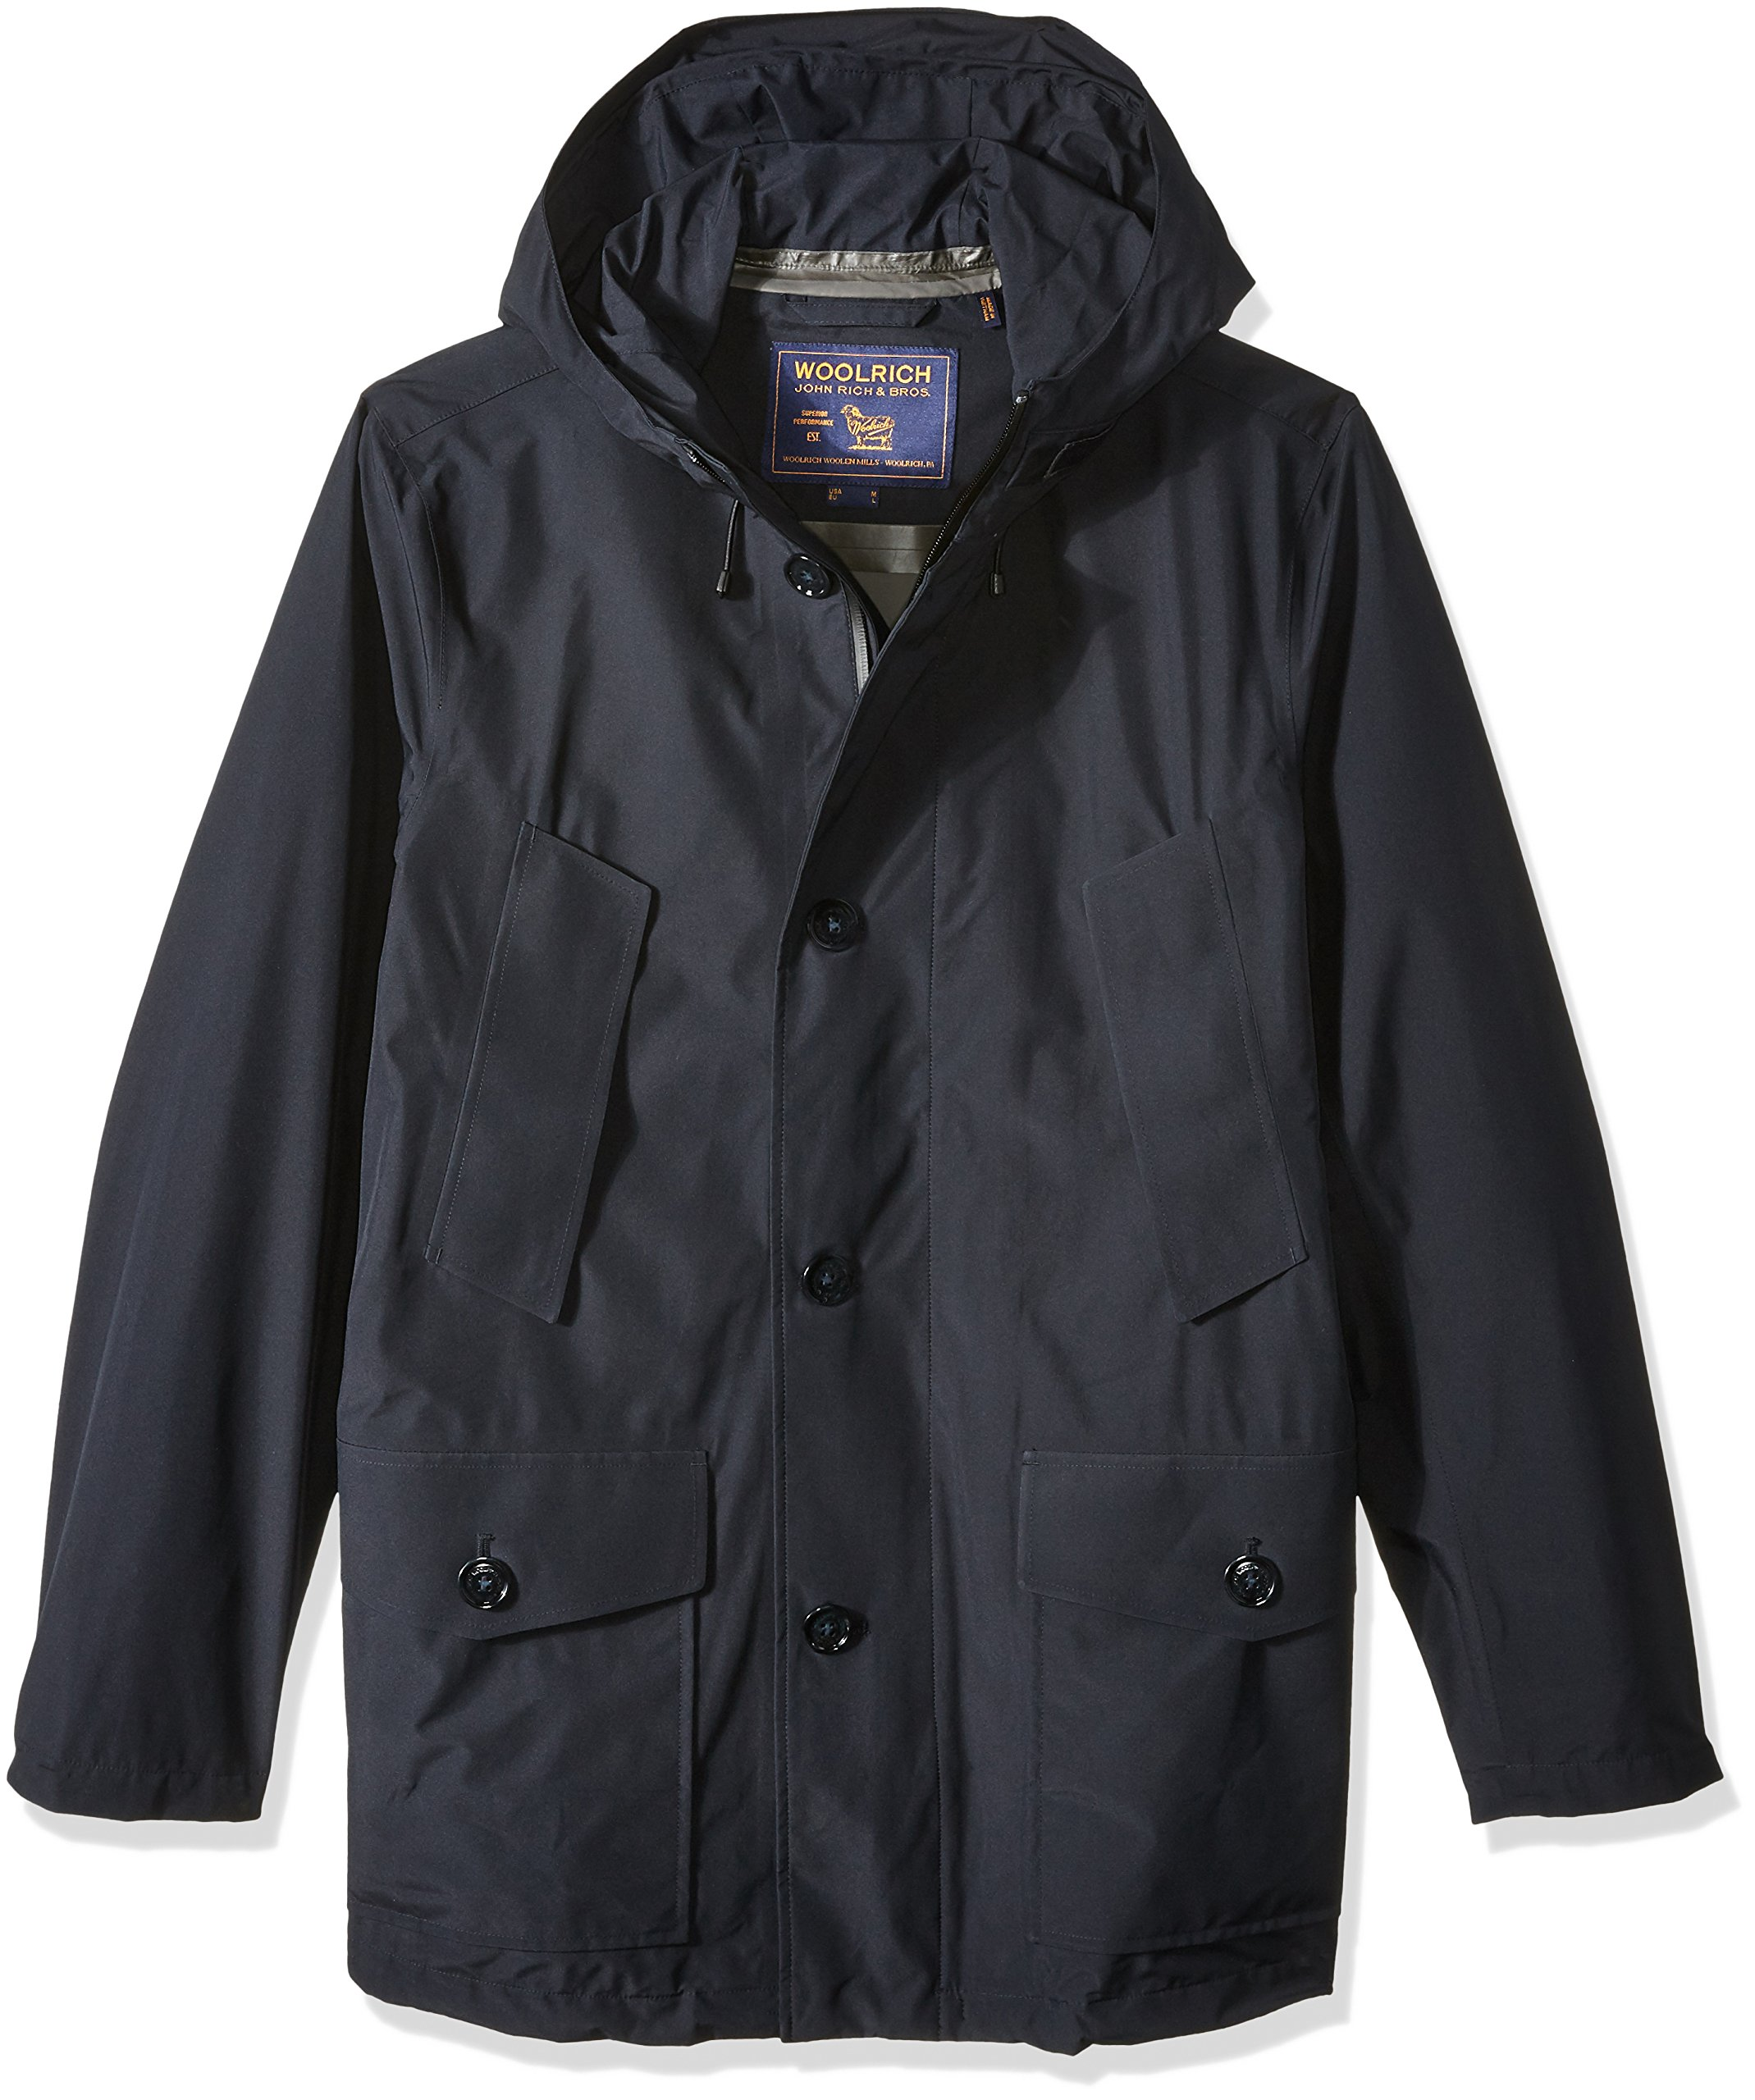 Woolrich John Rich & Bros. Men's Gtx Summer Parka, Navy Melton, M